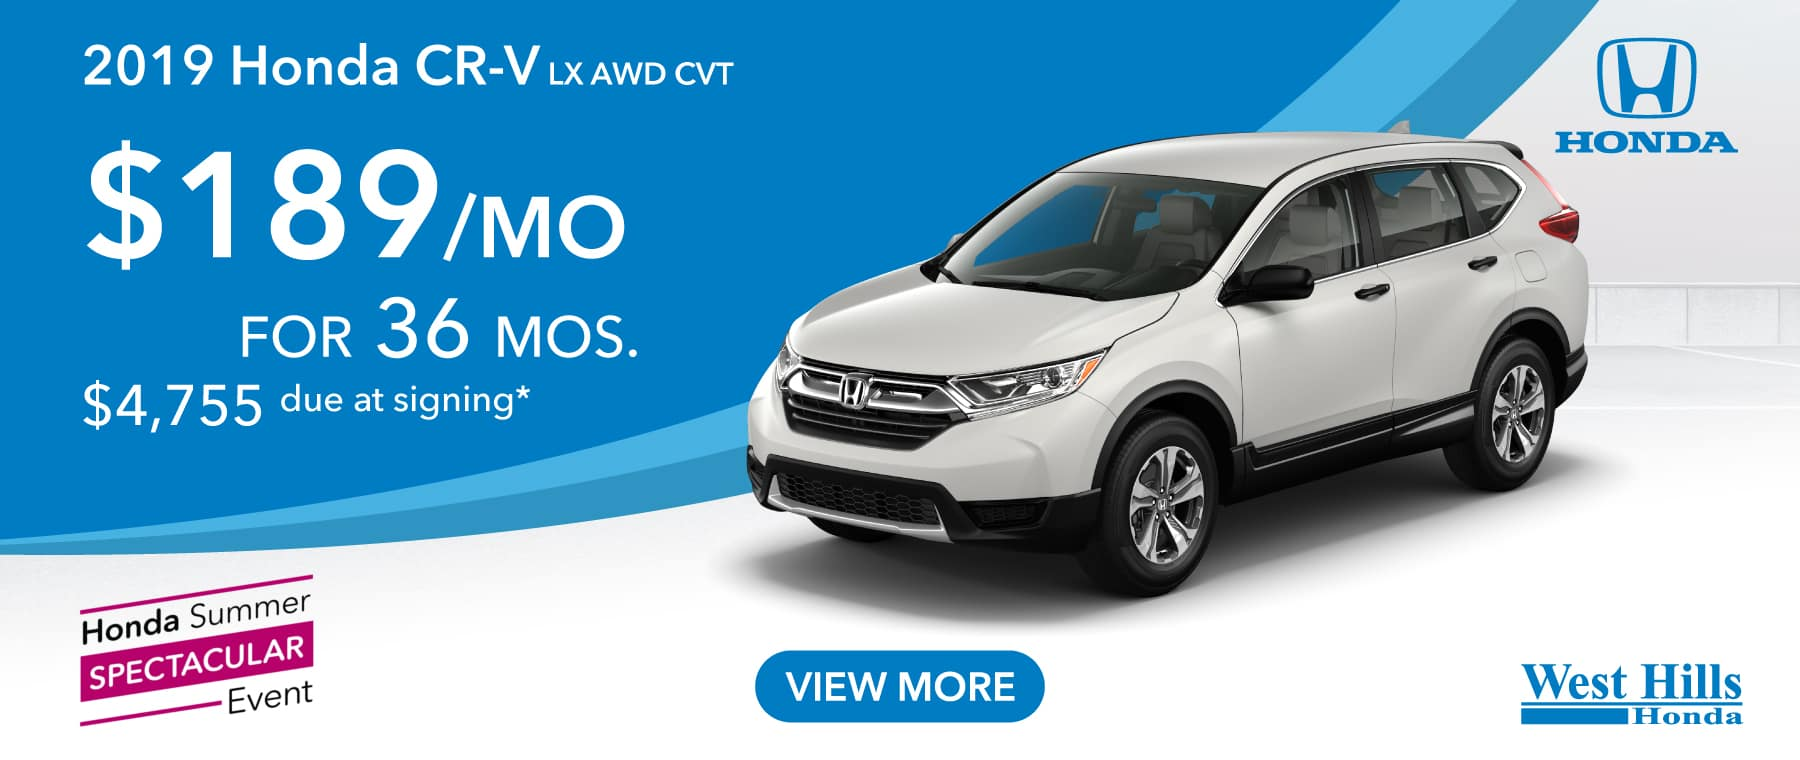 2019 HONDA CR-V LX AWD CVT $189/mo. for 36 mos. $4,755 due at signing*    *Valid on 2019 HONDA CR-V LX AWD CVT. $189 per mo. for 36 months. Lease with $4,755 due at signing; includes a $595 acquisition fee. Valid on VIN: 2HKRW6H31KH217392, 2HKRW6H38KH217695, 2HKRW6H36KH218134. MSRP $26,795. No Security deposit required. Subject to credit approval. 36 monthly payments required. Not all lessees will qualify for lowest payment through participating lender. Residency restrictions apply. Lessee responsible for maintenance, excessive wear/tear and mileage over 12,000 miles per year at $0.15/mile. Option to purchase at lease end. Excludes state and local taxes, tags, registration and title, insurance and dealer charges. A negotiable dealer documentary service fee of up to $150 may be added to the sale price or capitalized cost. Offer expires 9/3/2019.